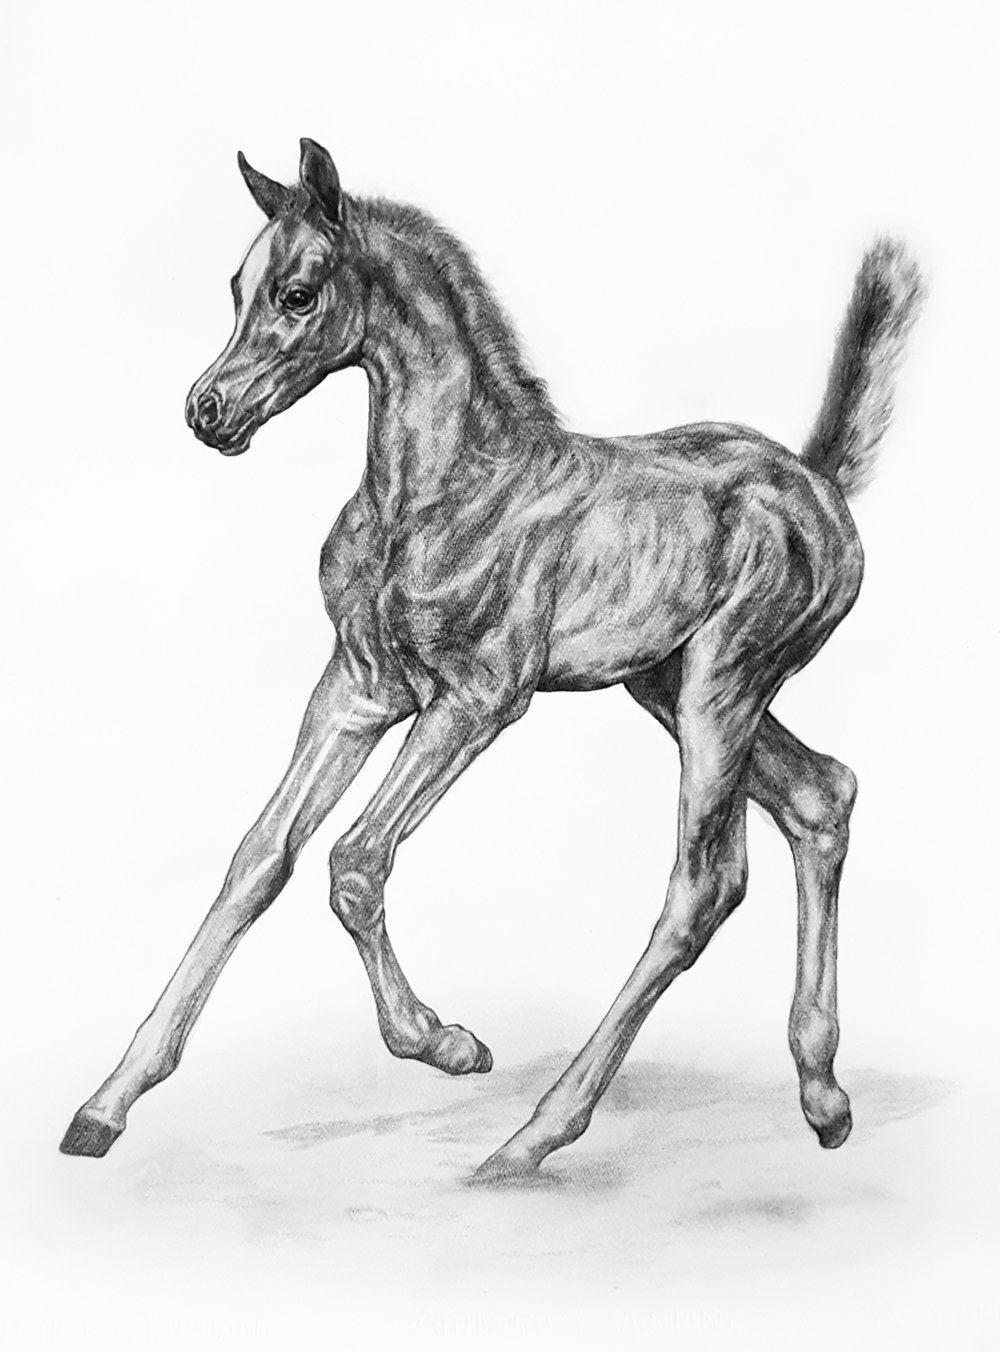 Trotting Arabian Foal. 2018. Graphite on 300 GSM Fabriano Artistico Paper (76 x 56cm) AVAILABLE